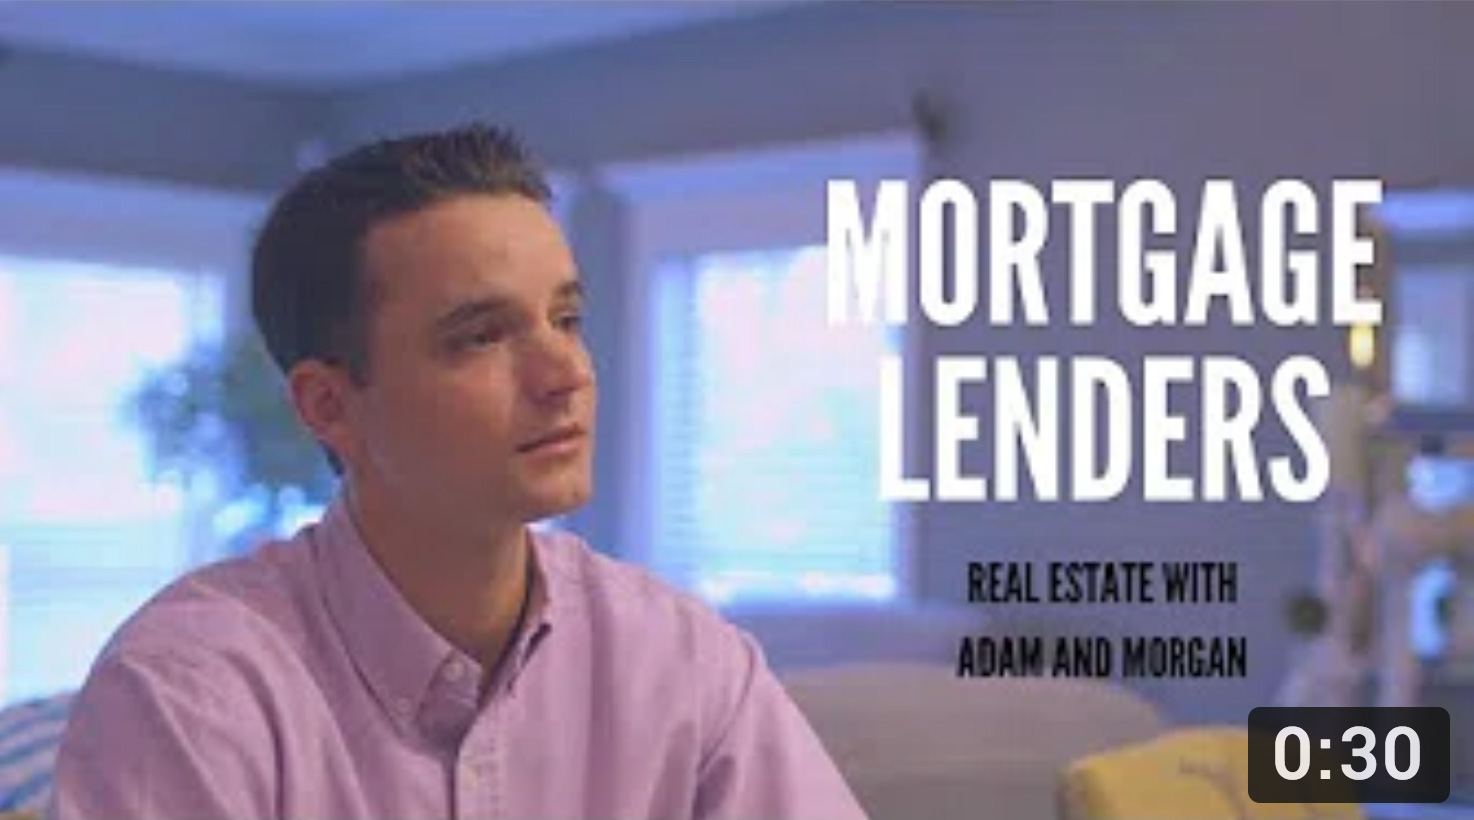 The Importance of Mortgage Lenders